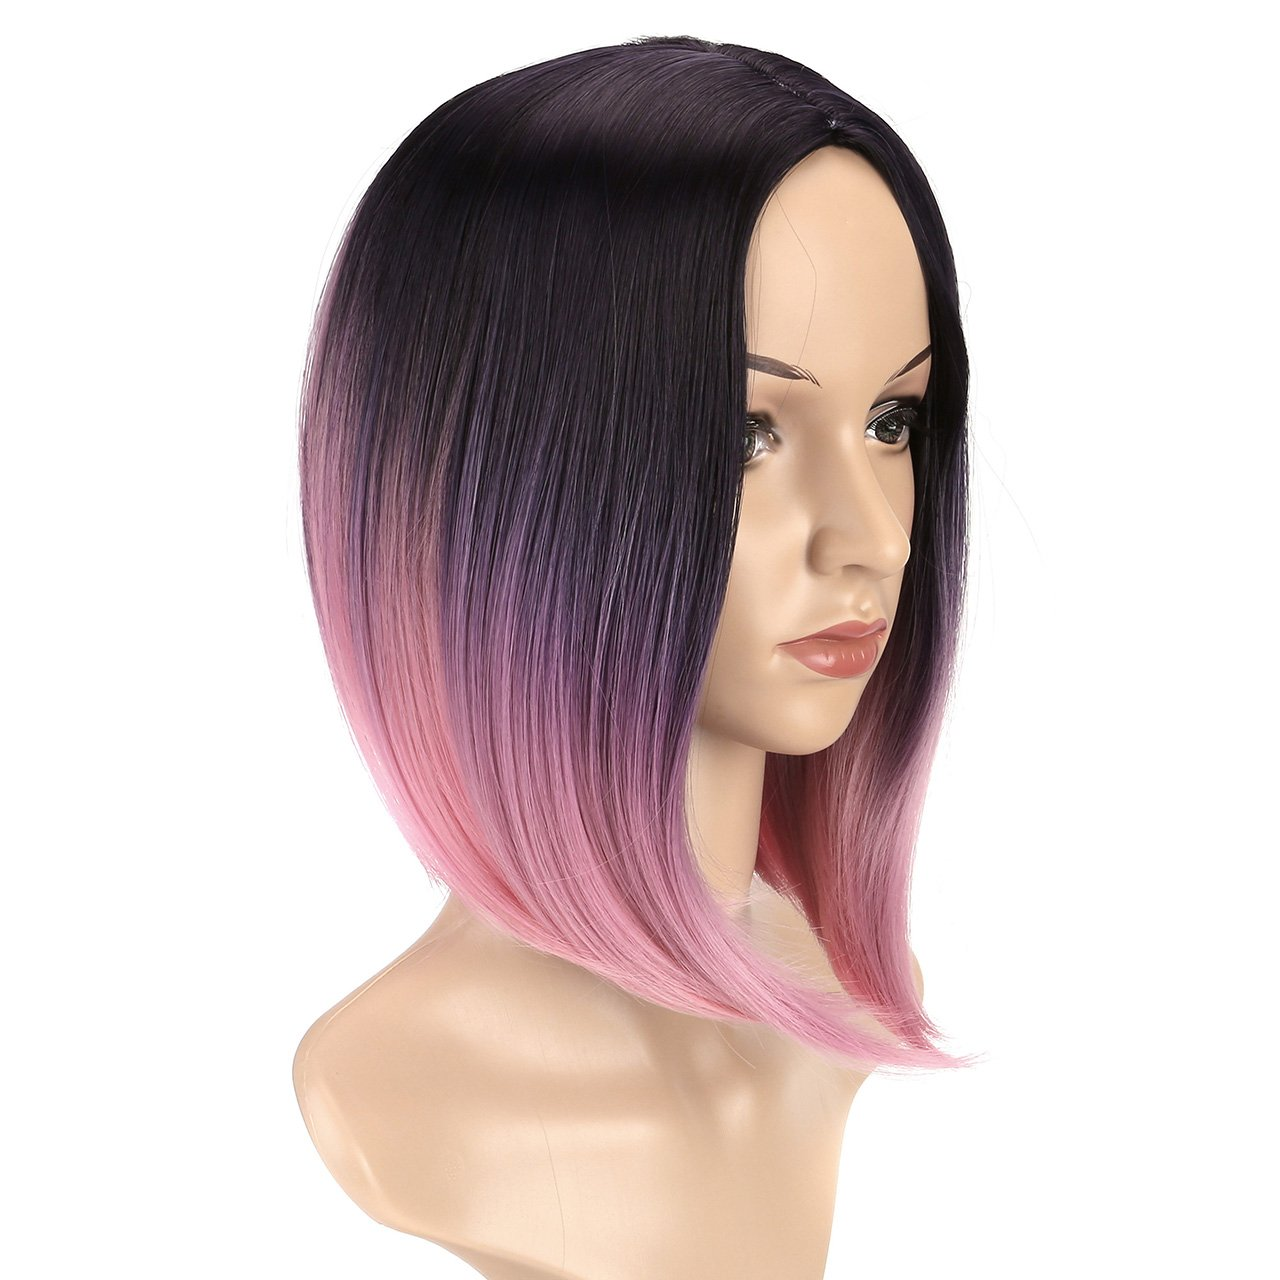 CCbeauty Ombre Bob Wig Straight With Middle Part Short Fashion Wig Cosplay Pink Ombre Wig Full Head Synthetic Wig for Women 14 Inches by CCbeauty (Image #3)